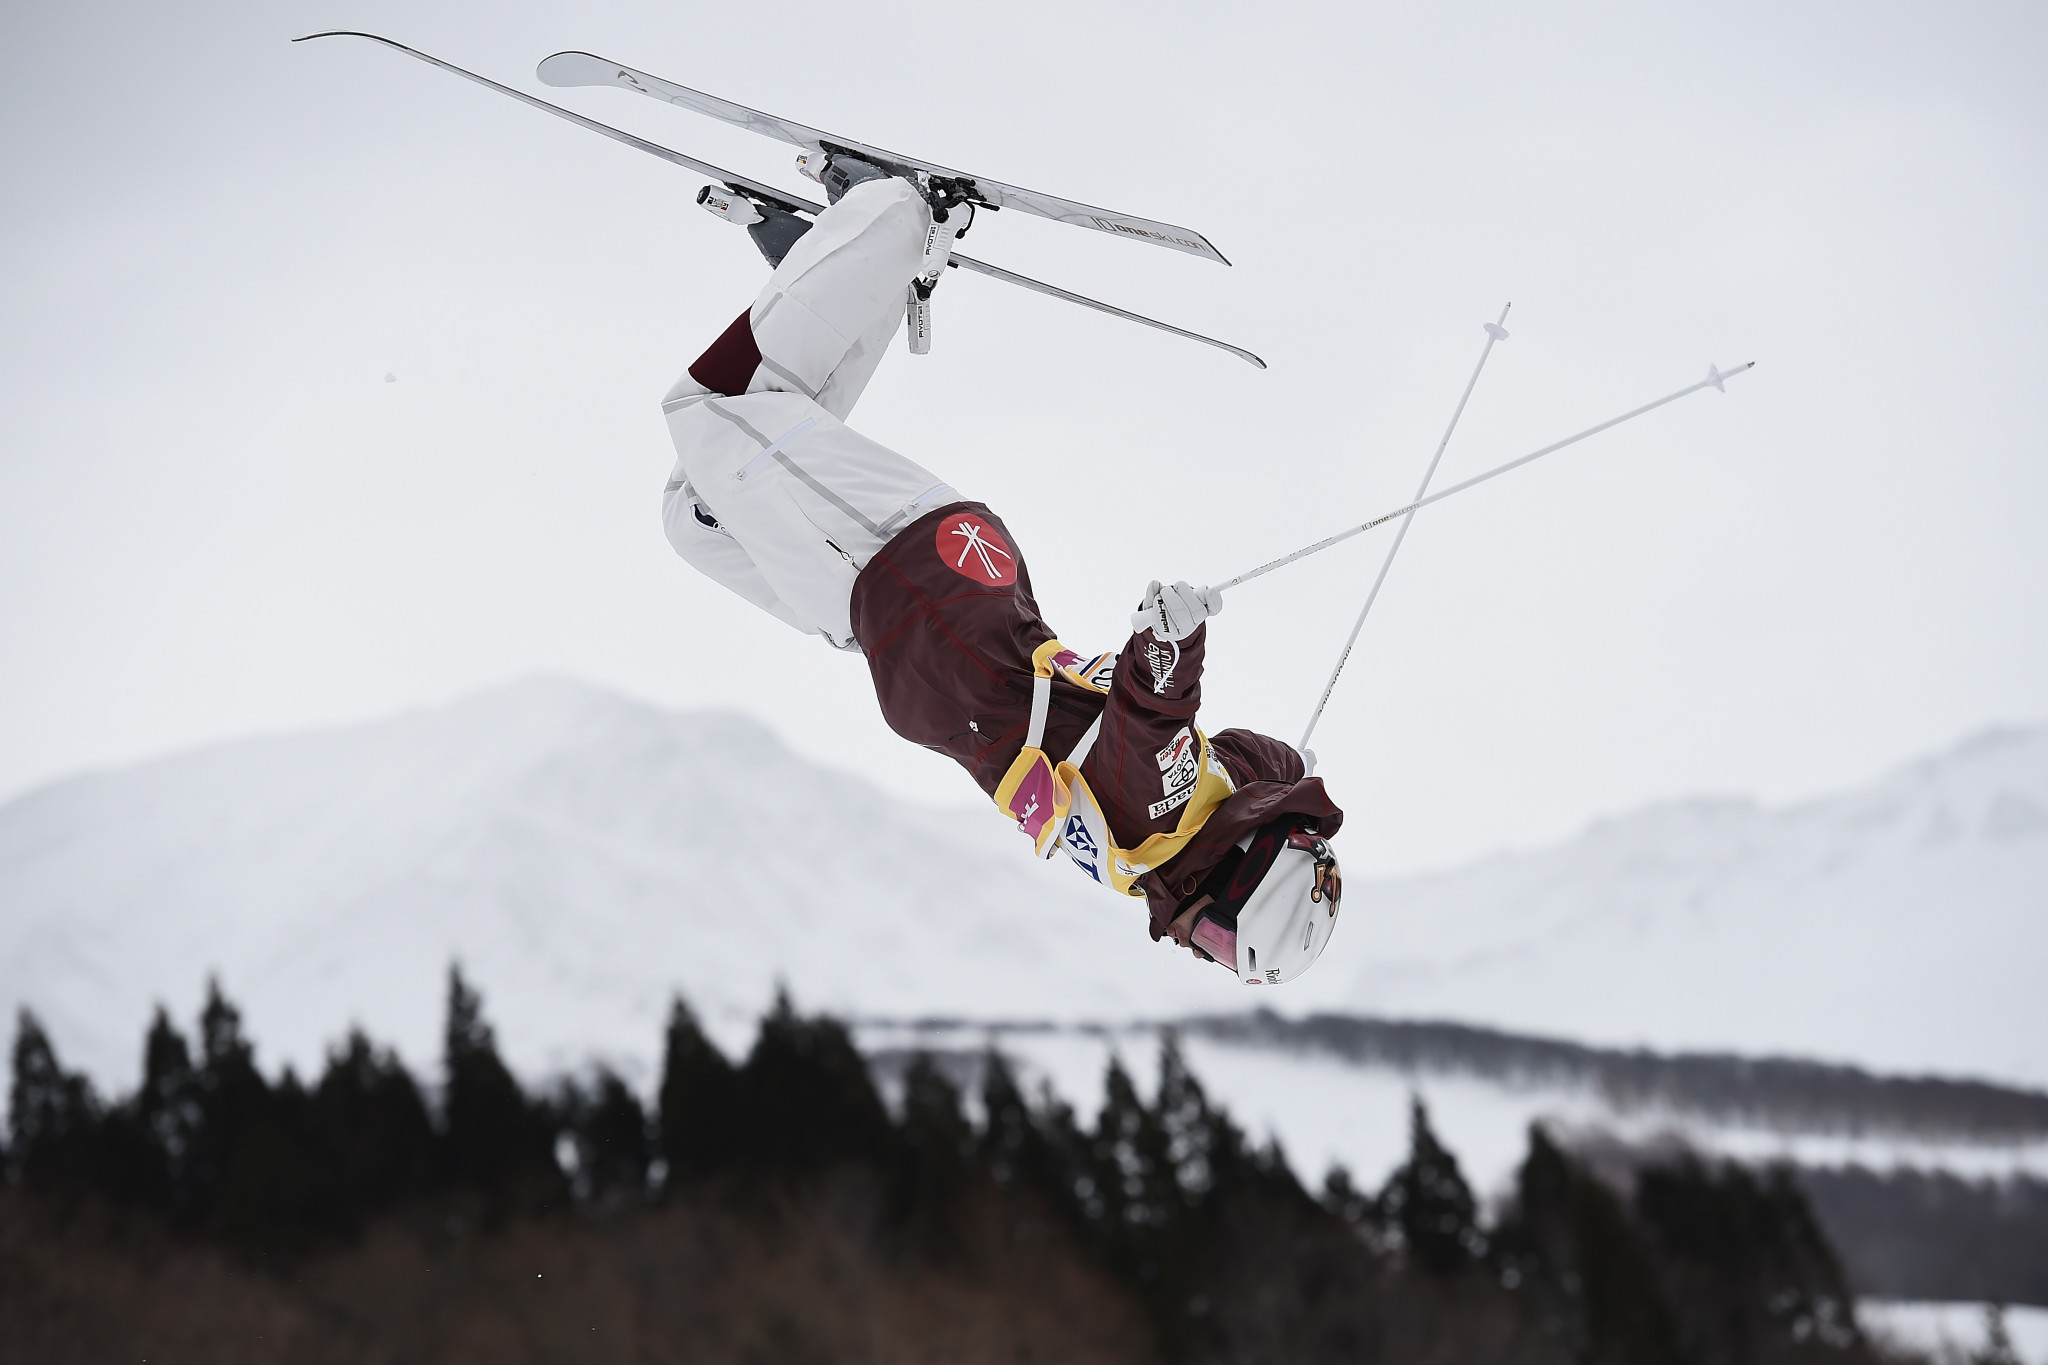 Kingsbury continues Moguls World Cup domination with Calgary triumph